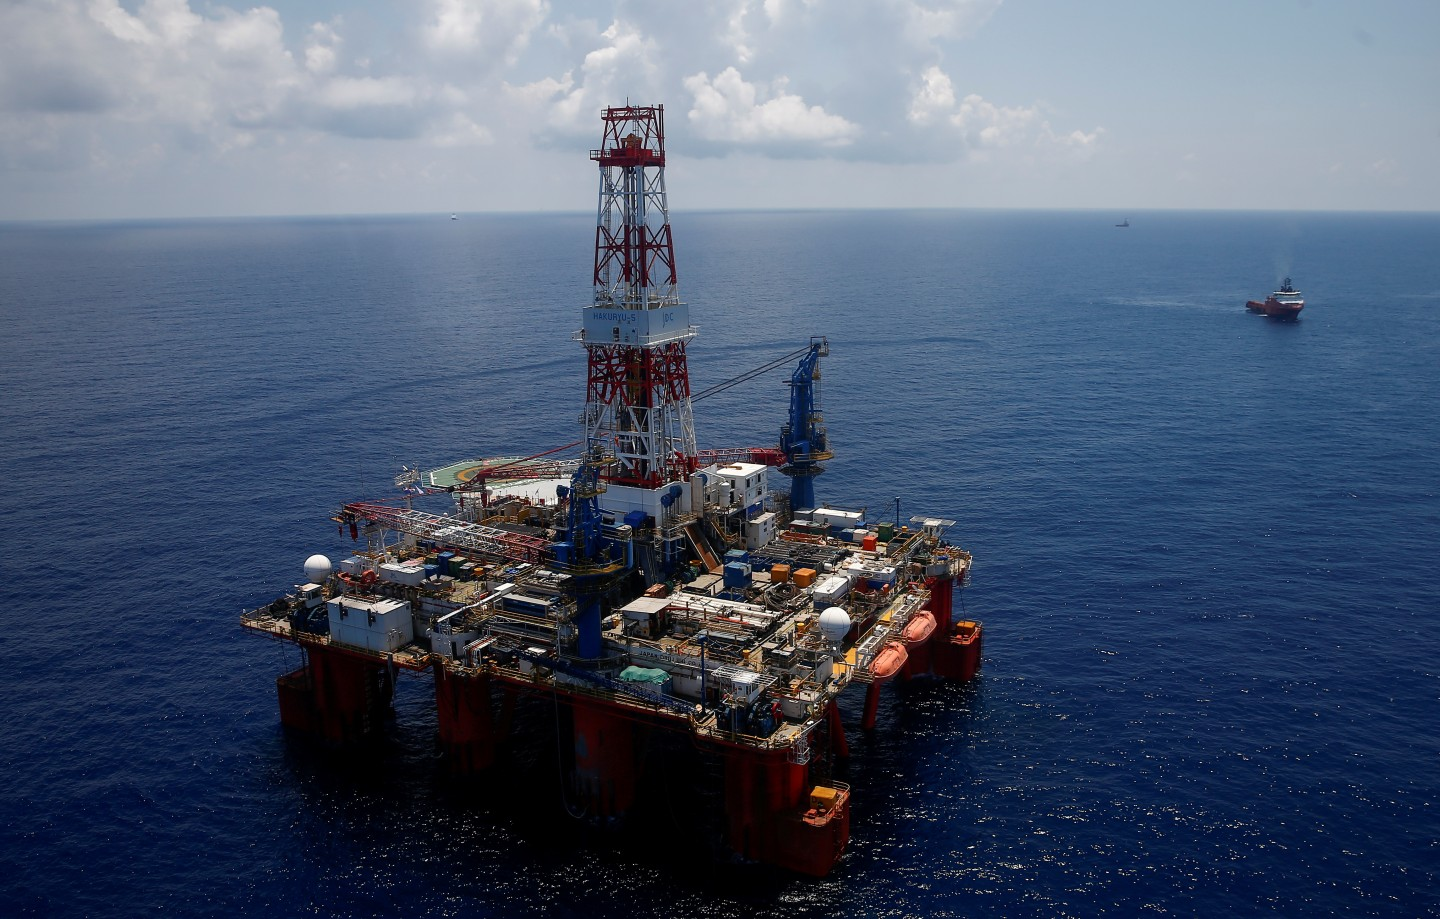 There is a longstanding dispute between the two over maritime rights and territorial claims in the South China Sea which has undermined mutual trust. A general view shows JDC Hakuryu-5 drilling rig and supply vessels in the South China Sea off the coast of Vung Tau, Vietnam April 29, 2018. REUTERS/Maxim Shemetov/File Photo